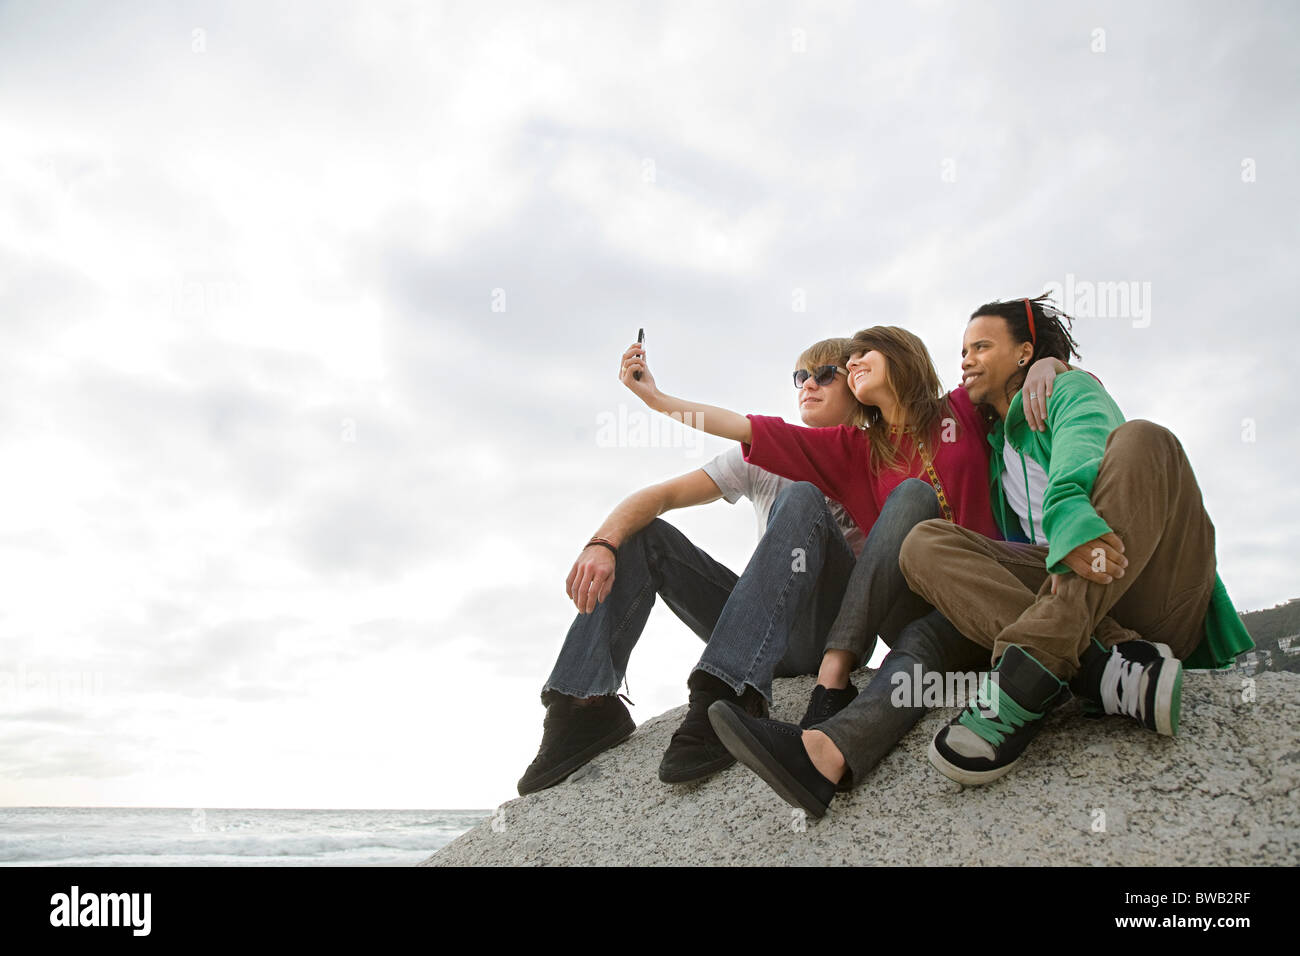 Friends taking photograph of themselves - Stock Image